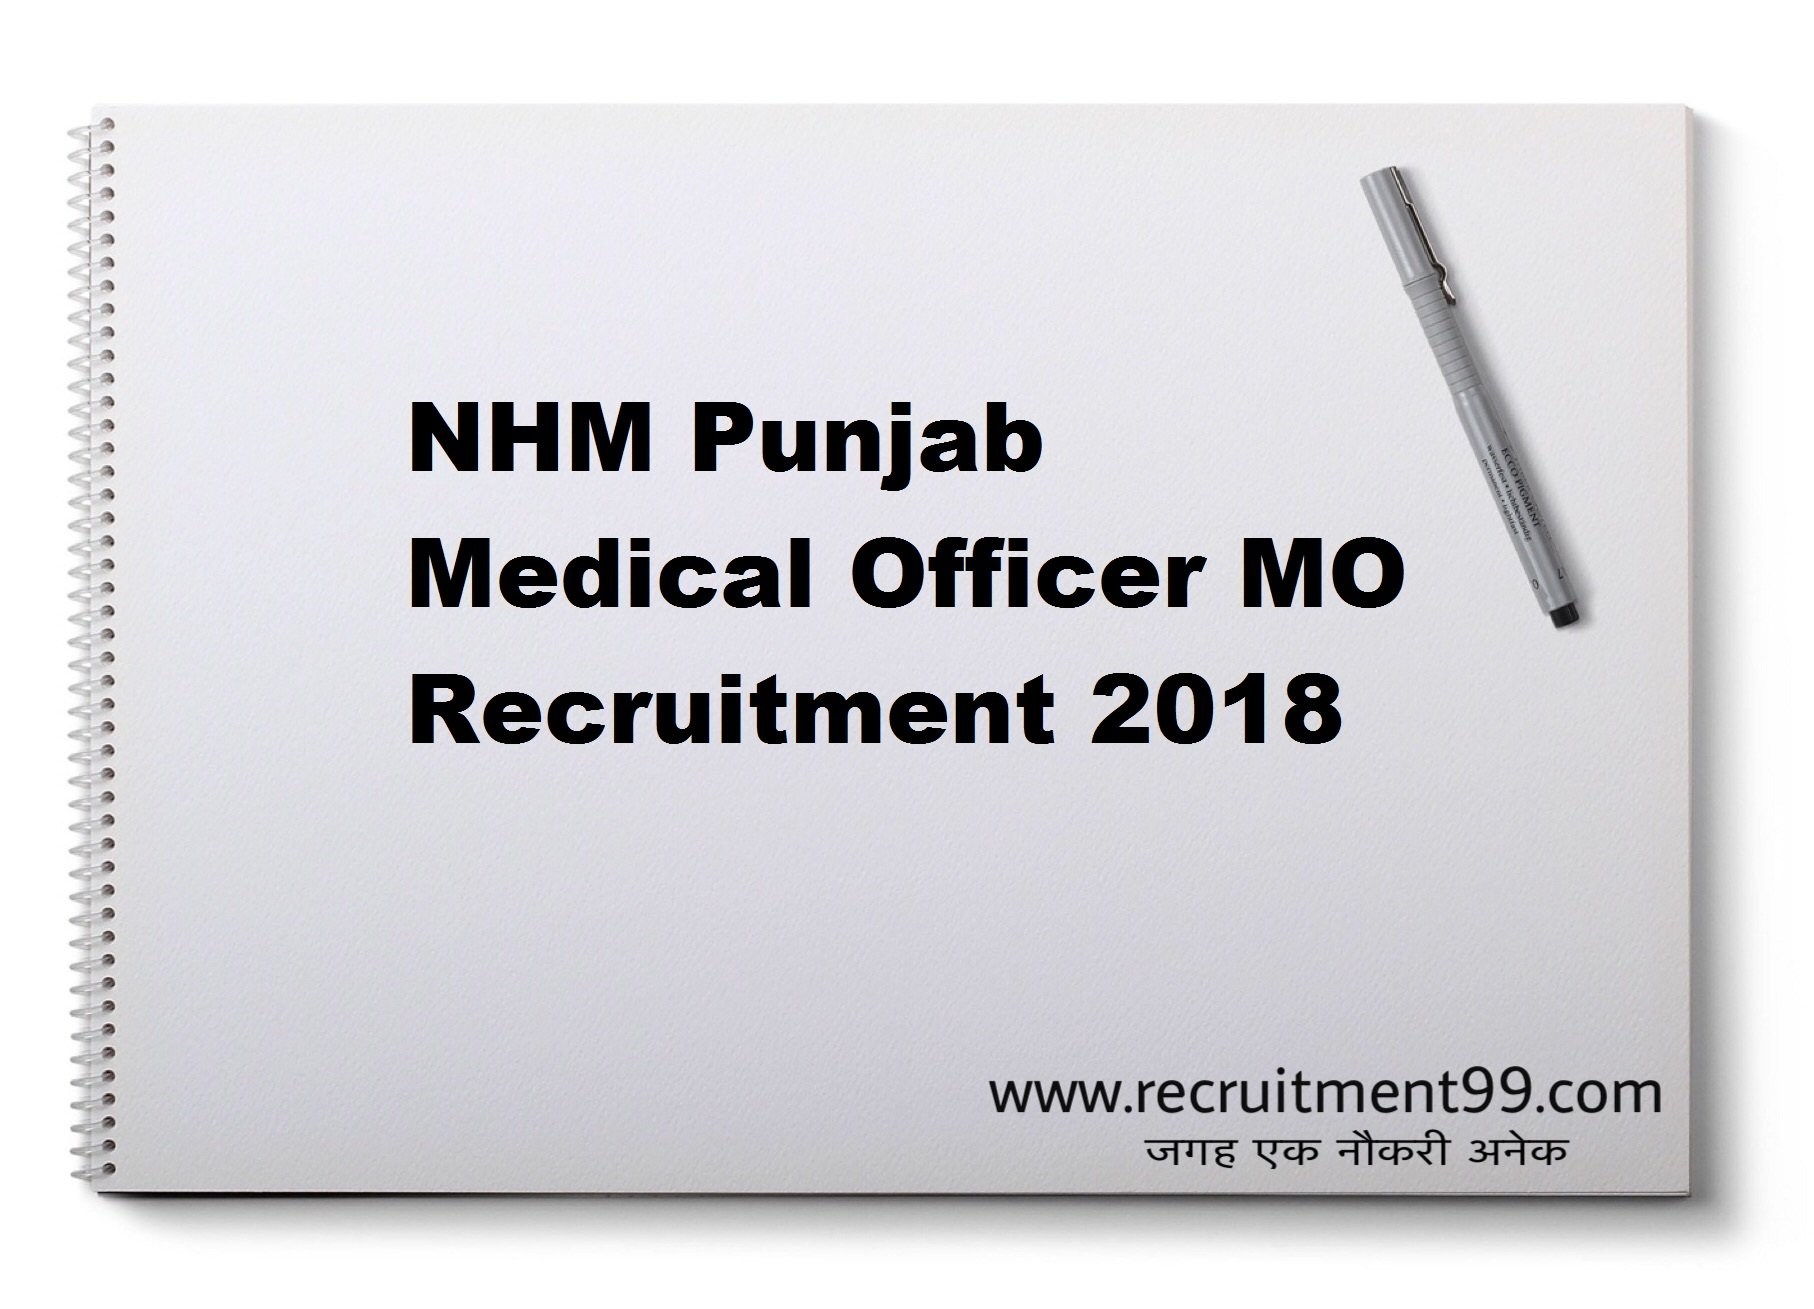 NHM Punjab Medical Officer MO Recruitment Admit Card Result 2018